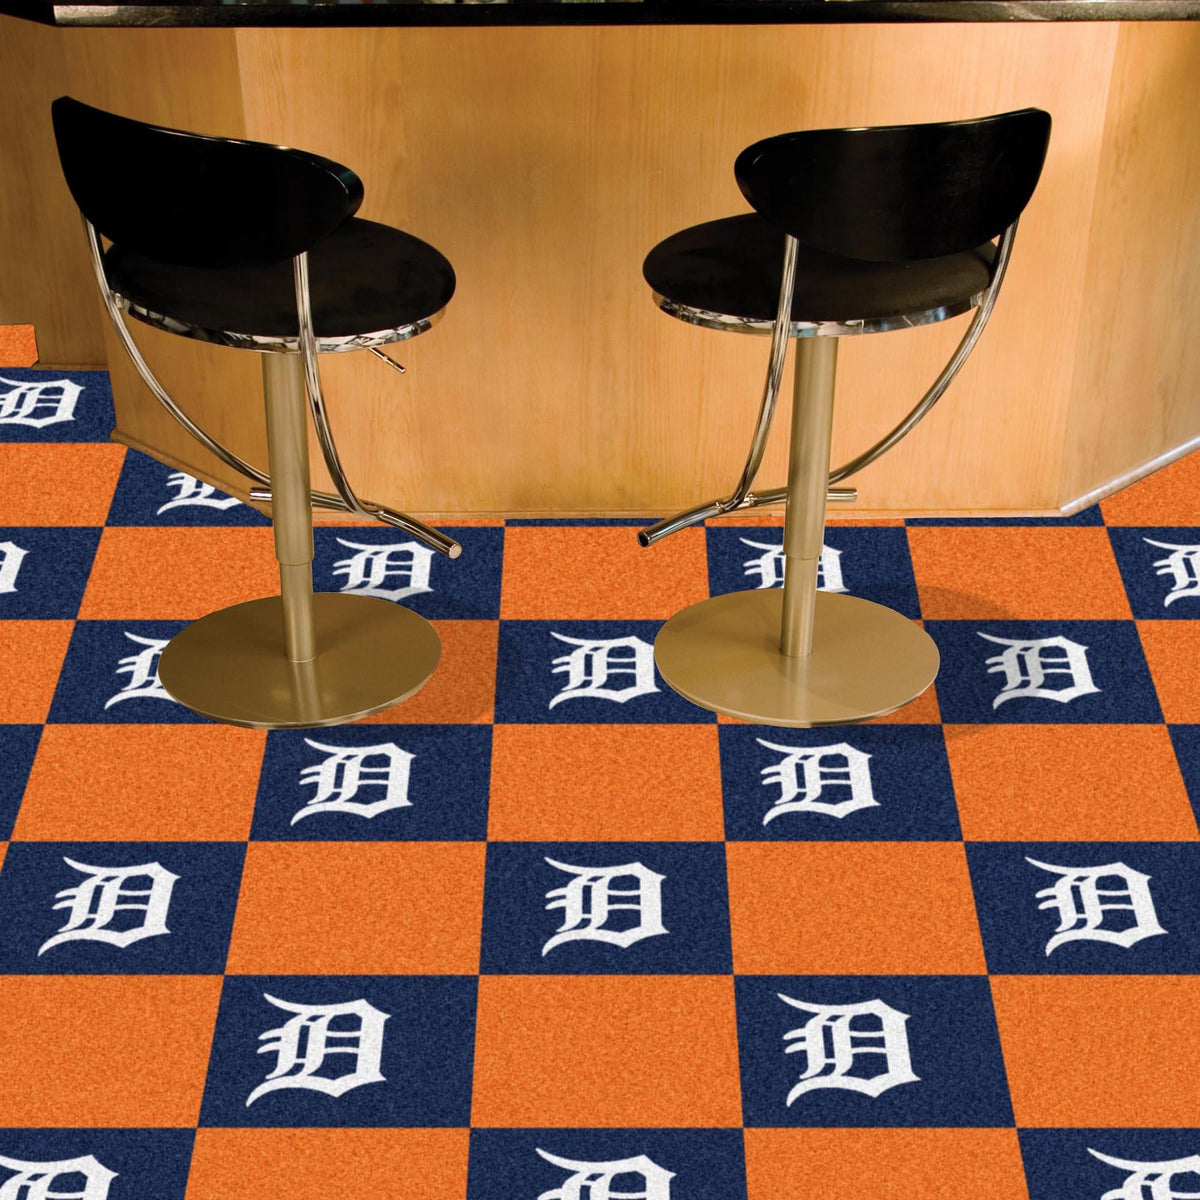 MLB - Team Carpet Tiles MLB Mats, Carpet Tile Flooring, Team Carpet Tiles, MLB, Home Fan Mats Detroit Tigers